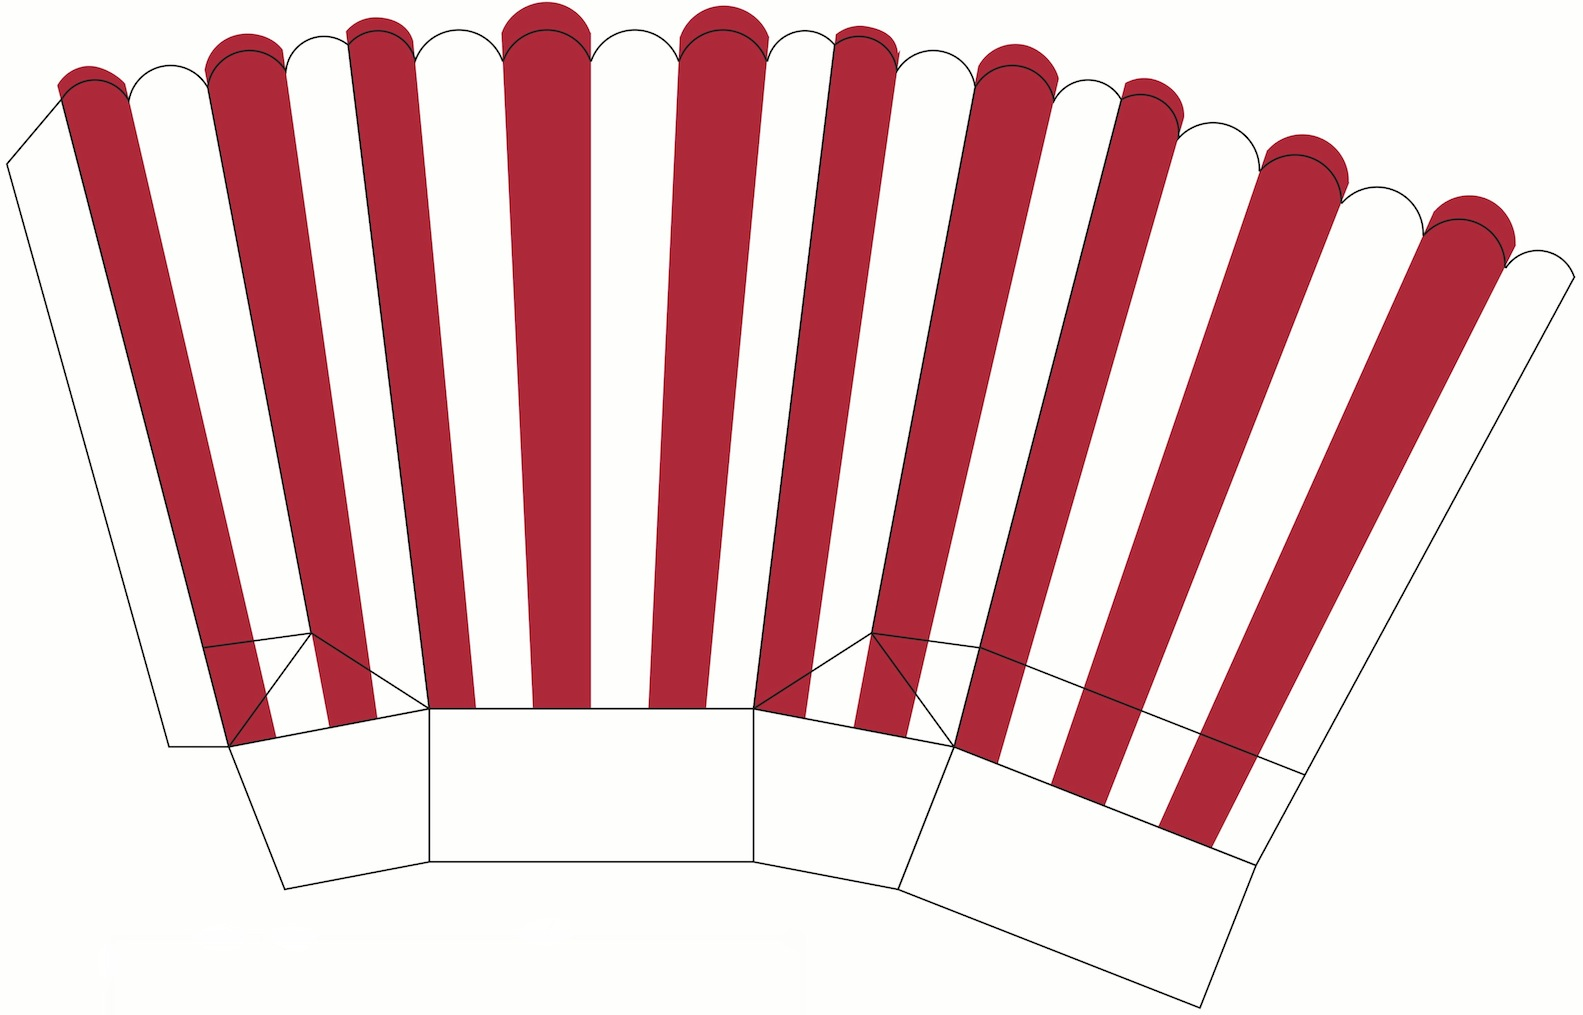 This is a graphic of Insane Printable Popcorn Box